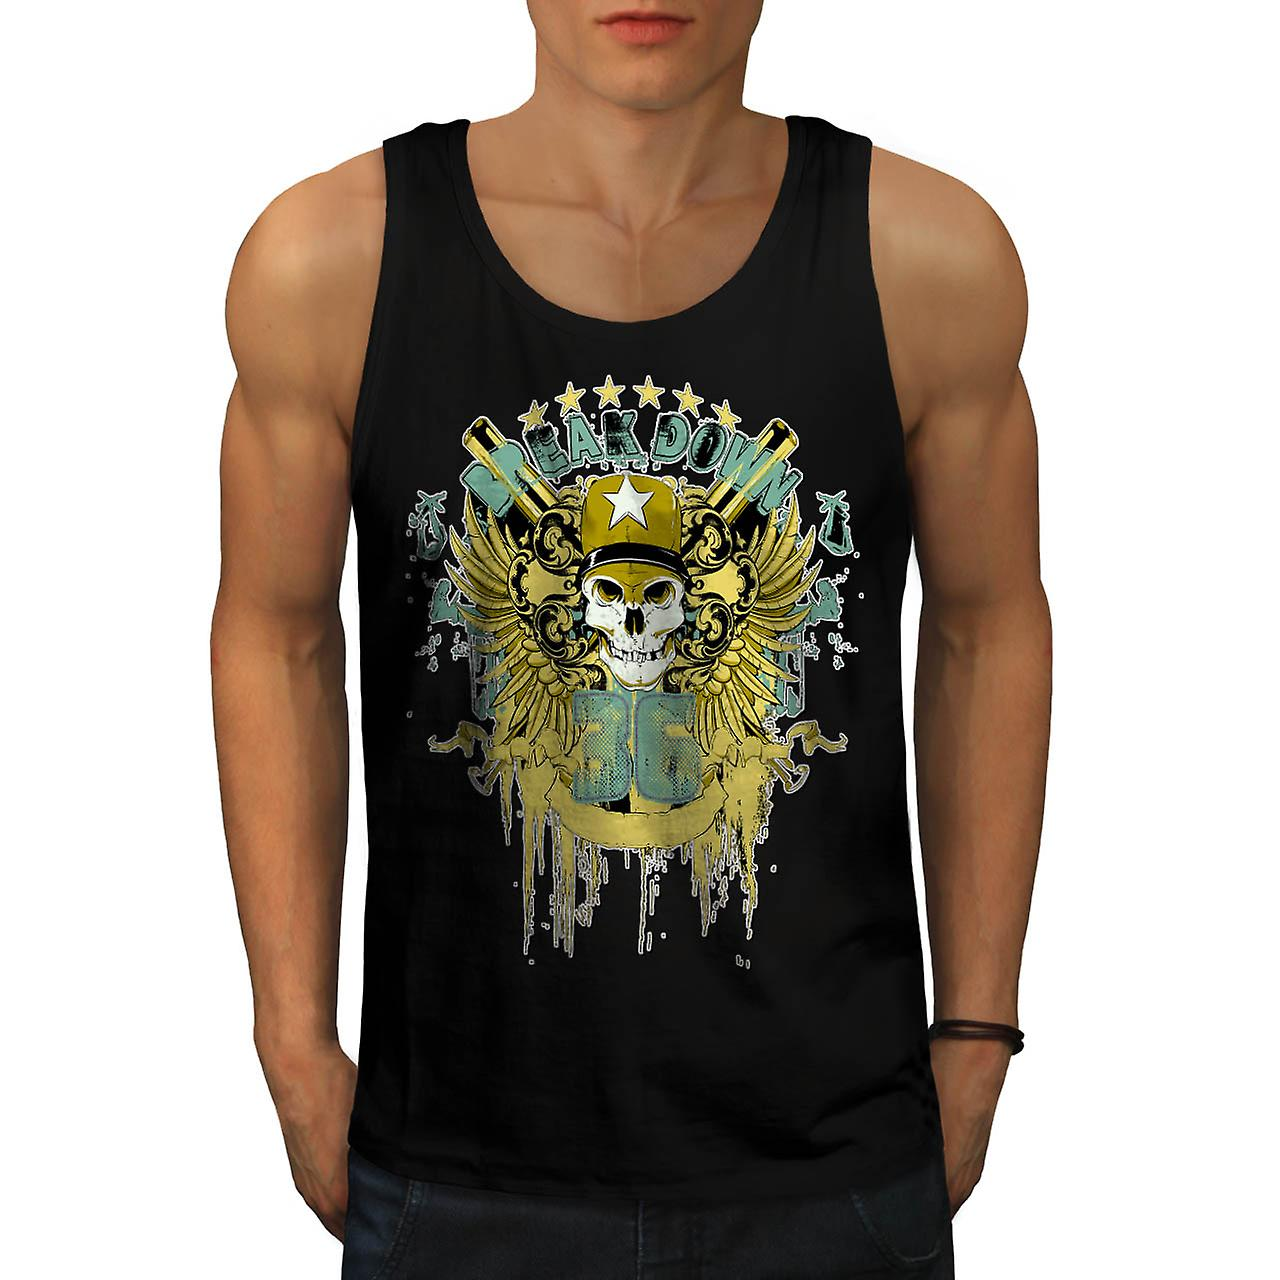 Break Down Troop Army Sport Team Men Black Tank Top | Wellcoda